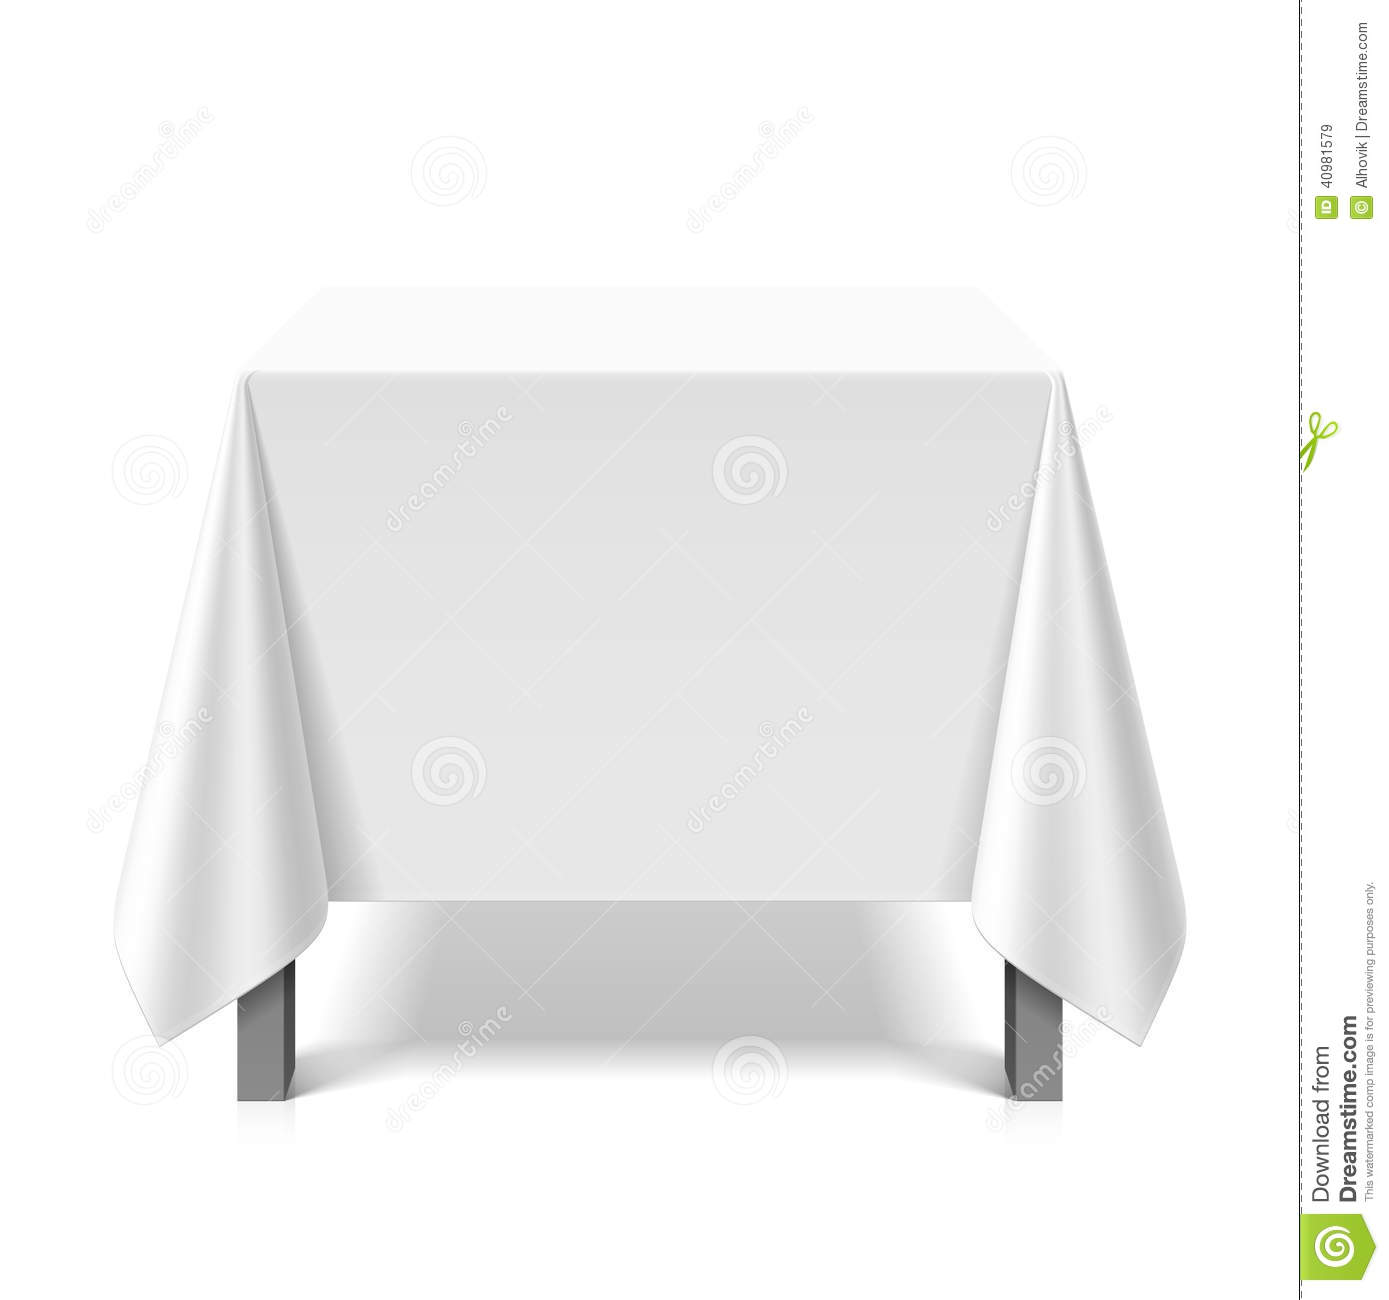 Table carr e couverte de nappe blanche illustration de - Nappe de table carre ...